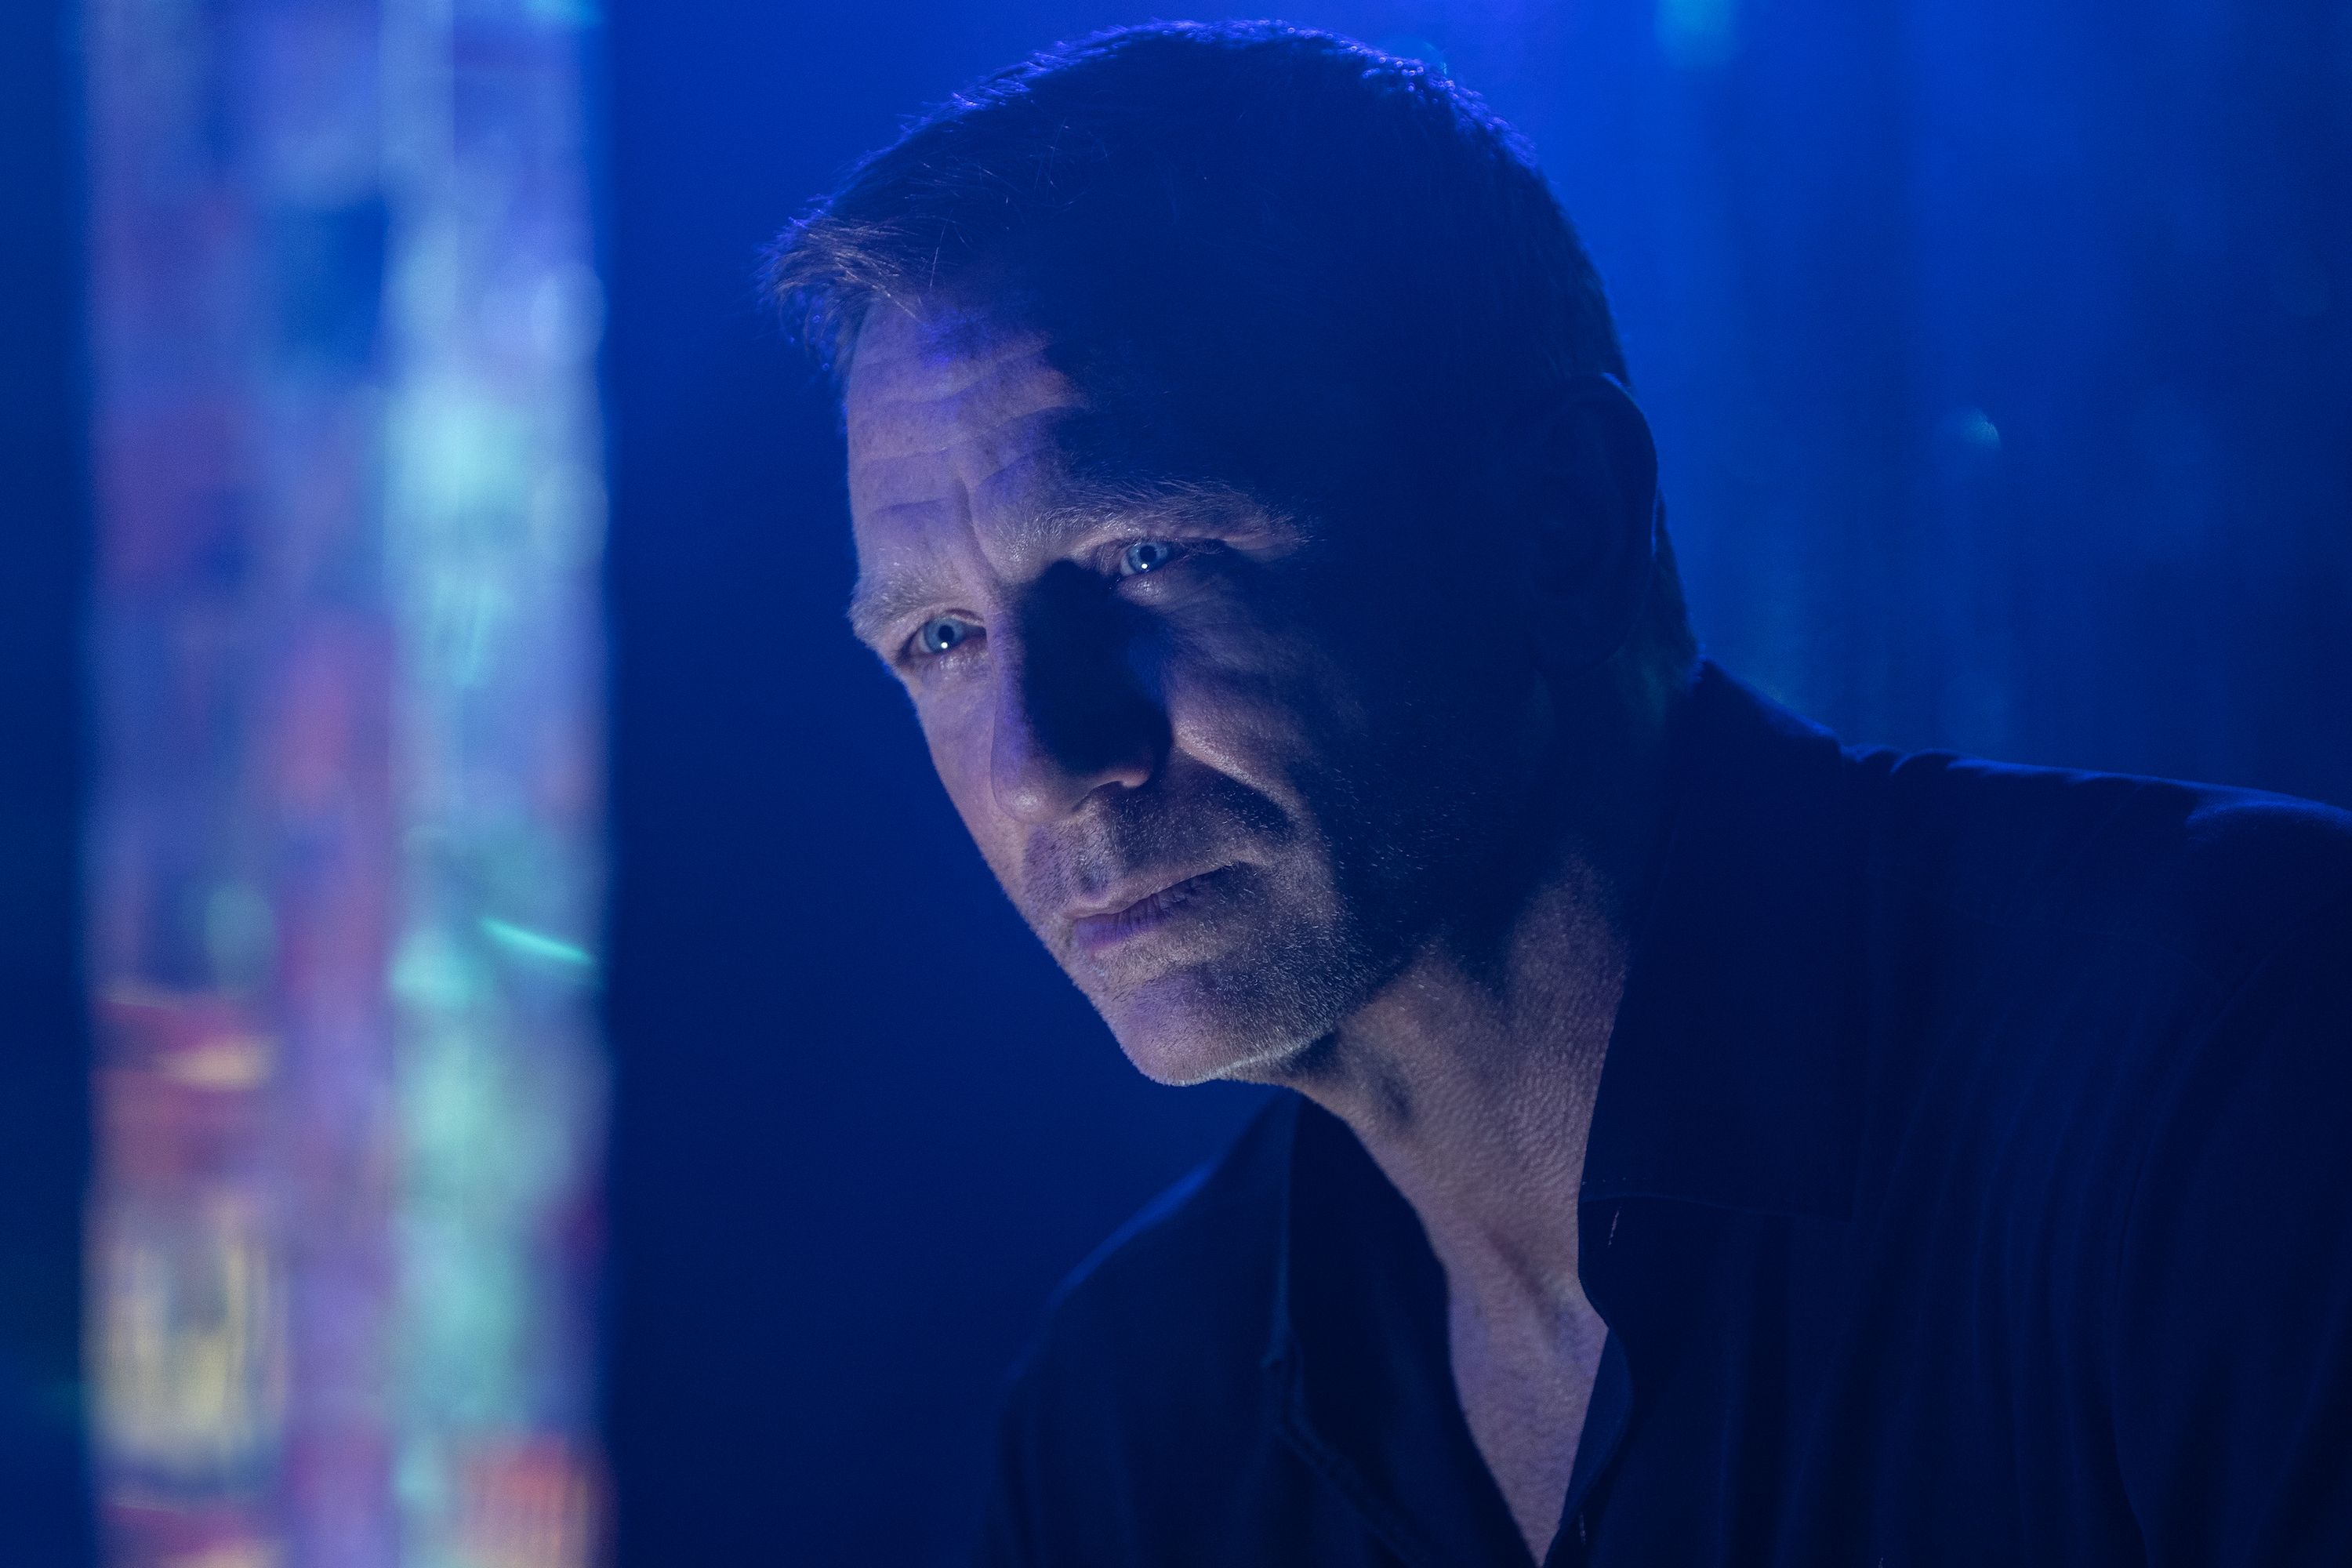 Daniel Craig looks broody in blue light in No Time To Die (to be fair, he looks broody everywhere, but this is specifically an image description, not a character description)